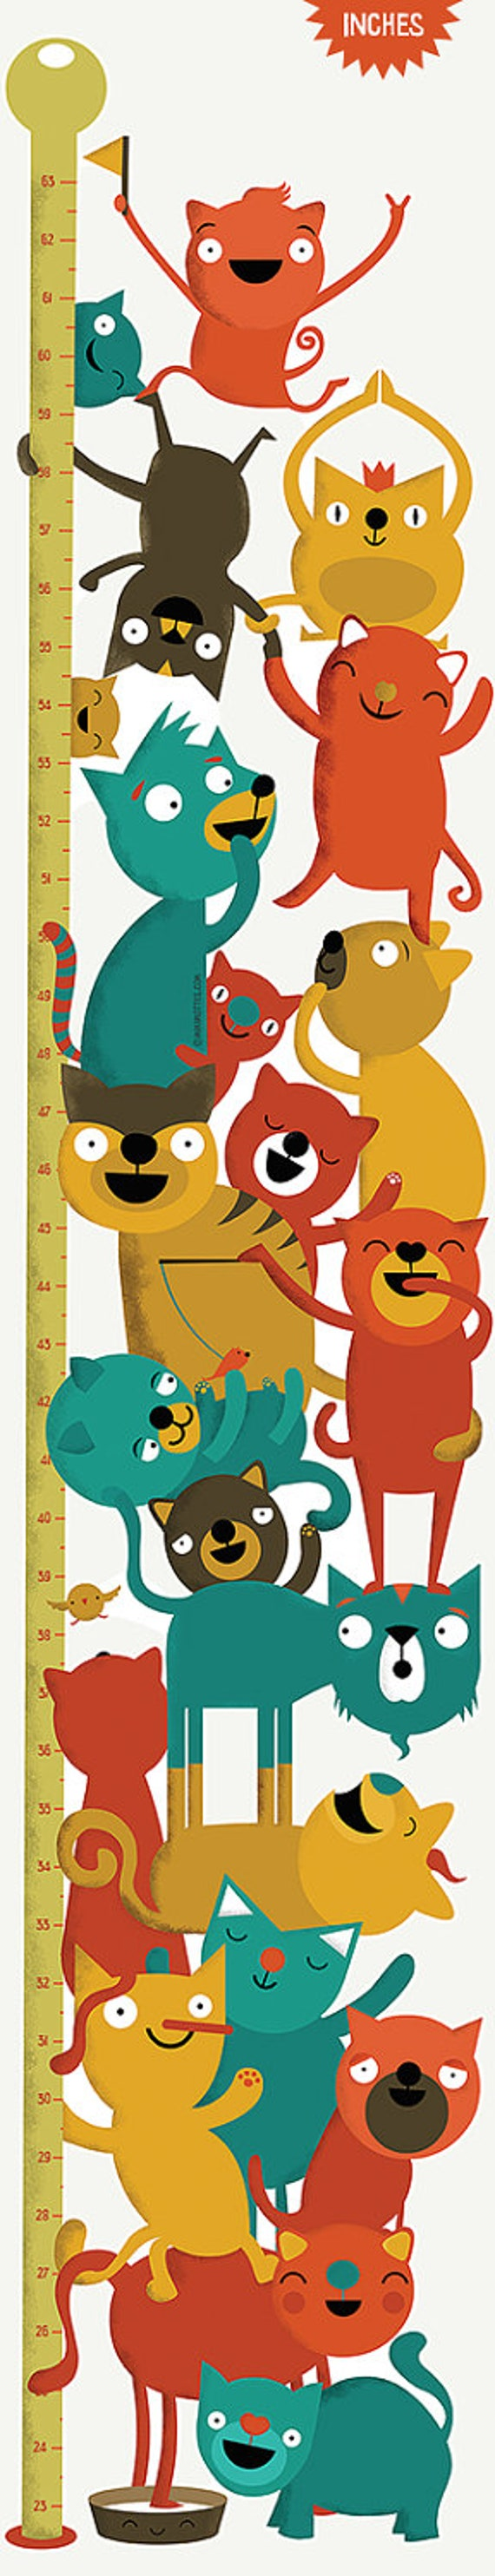 Height Chart of cats: Inch Wall Decor Growth Chart, Wall Vinyl Sticker for cat owners and cat lovers!